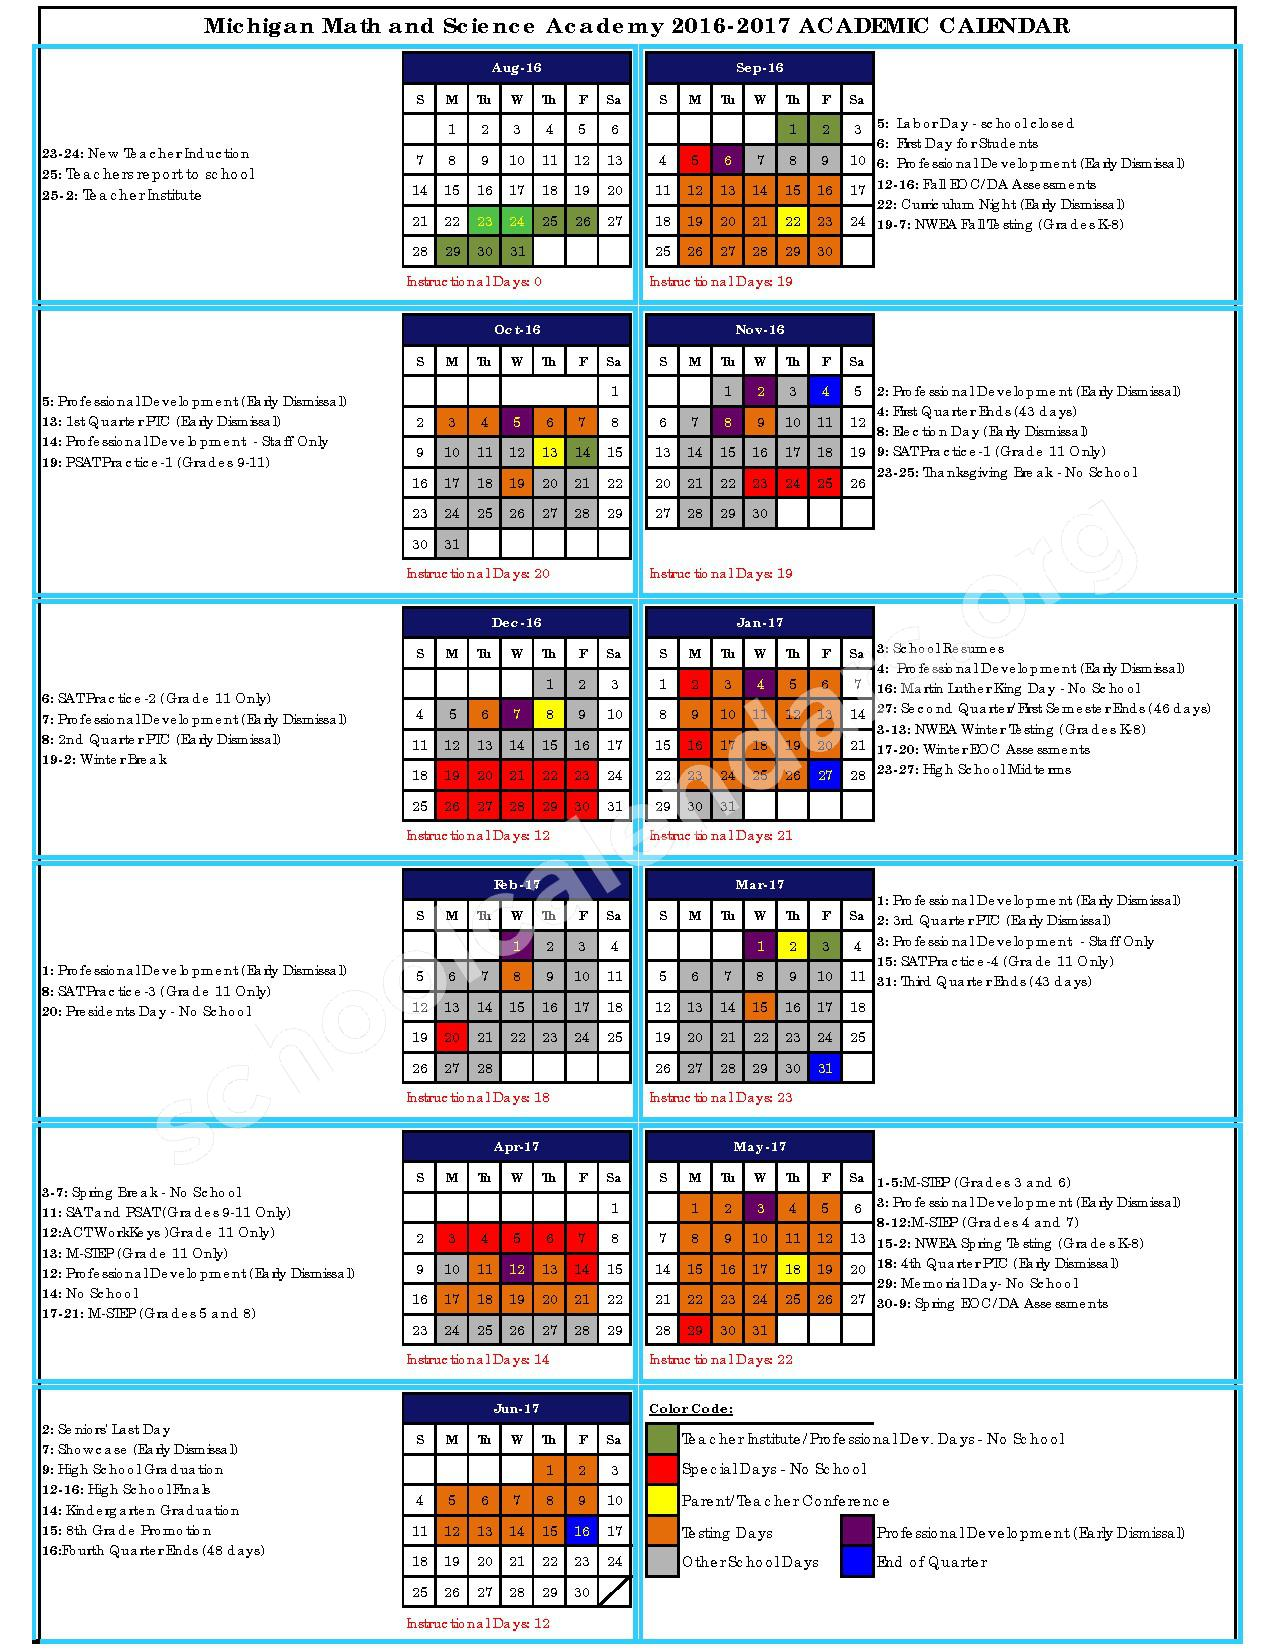 2016 - 2017 School Calendar – Michigan Math and Science Academy – page 1